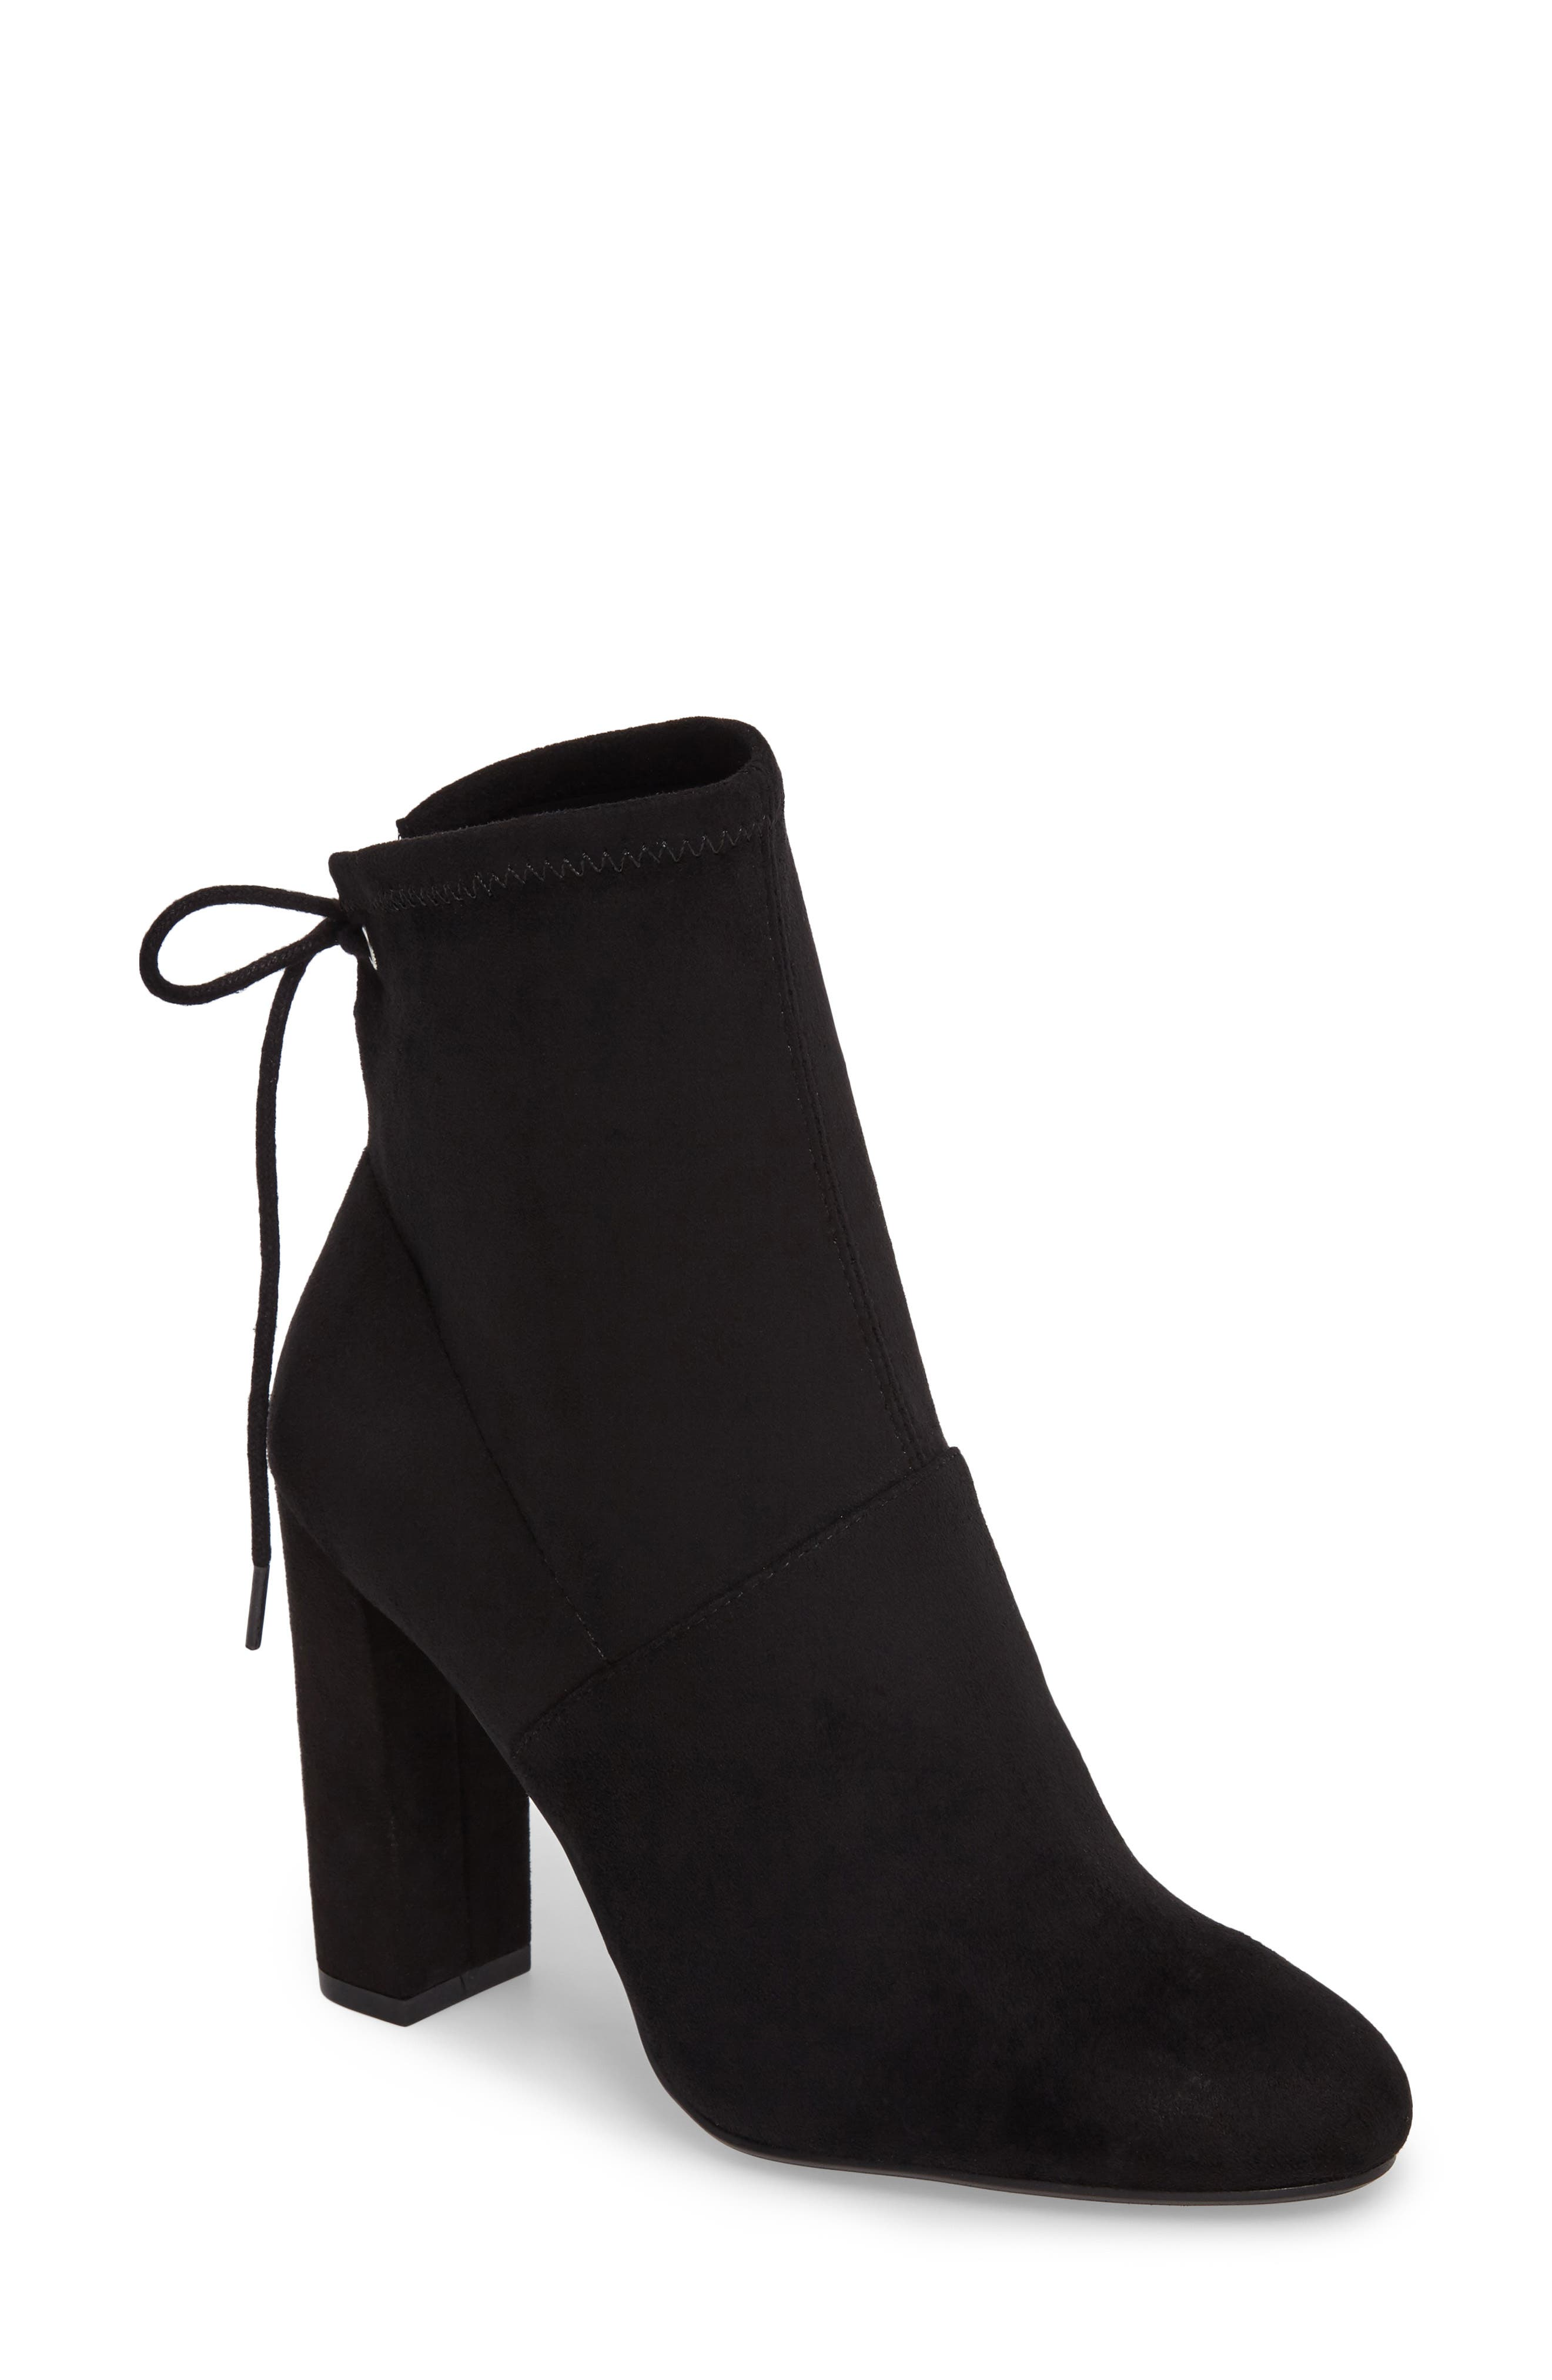 Enact Tie-Back Bootie,                             Main thumbnail 1, color,                             Black